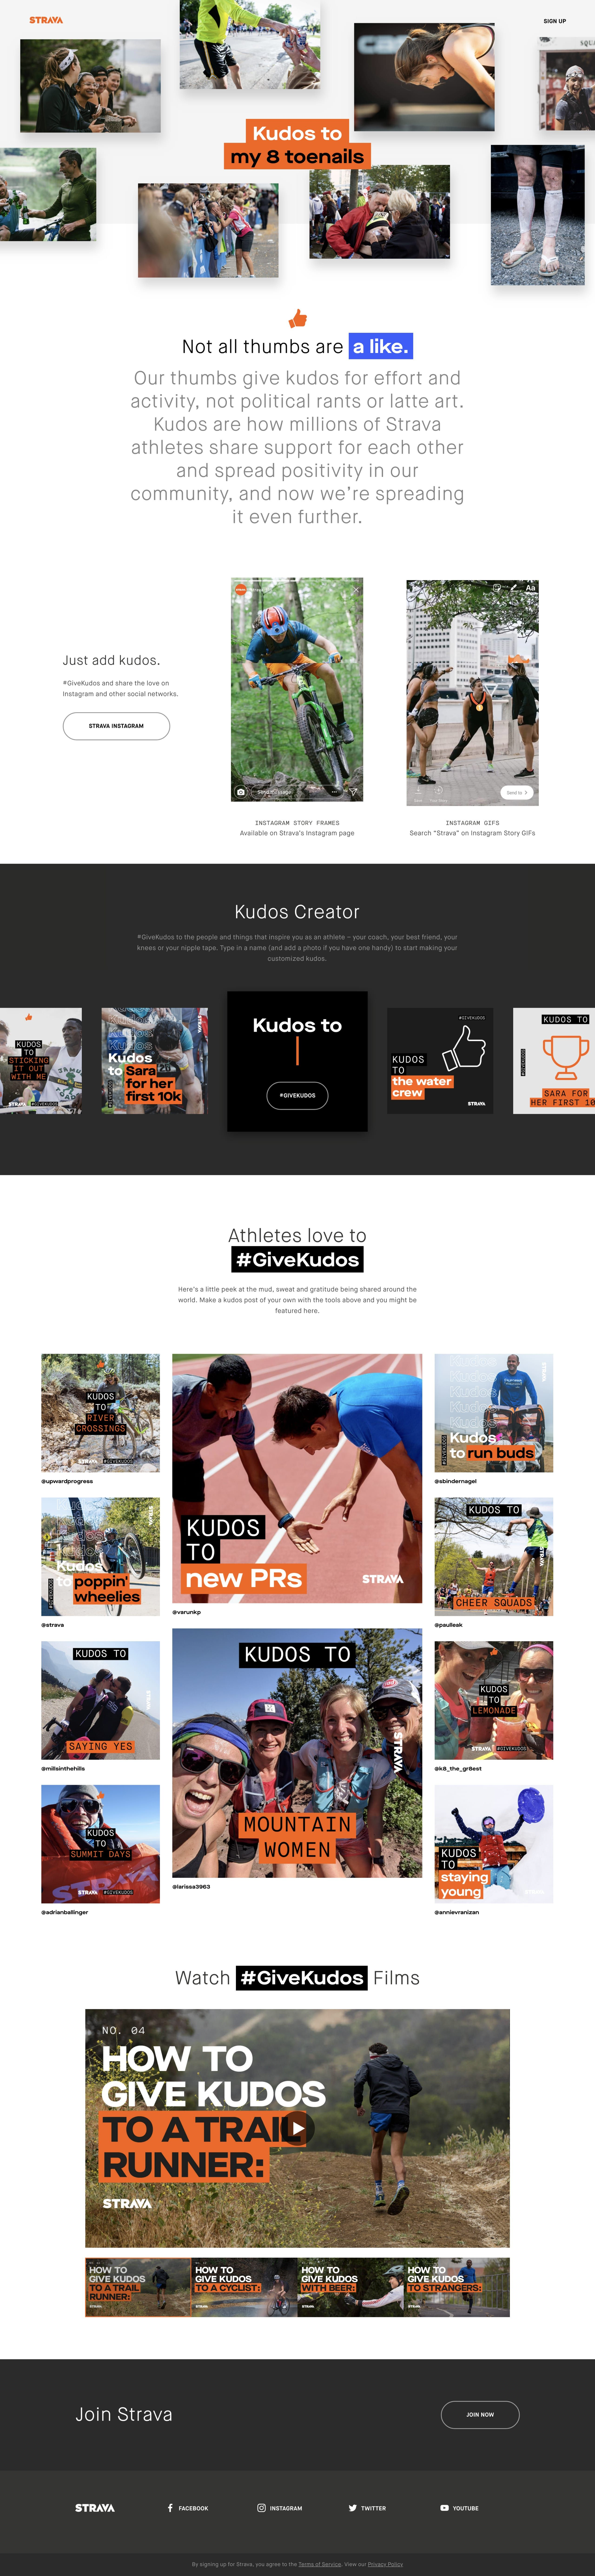 d9c398435a Awesome campaign by Strava for their  GiveKudos hashtag campaign. The  long-scrolling One Pager features neat animations when hovering images